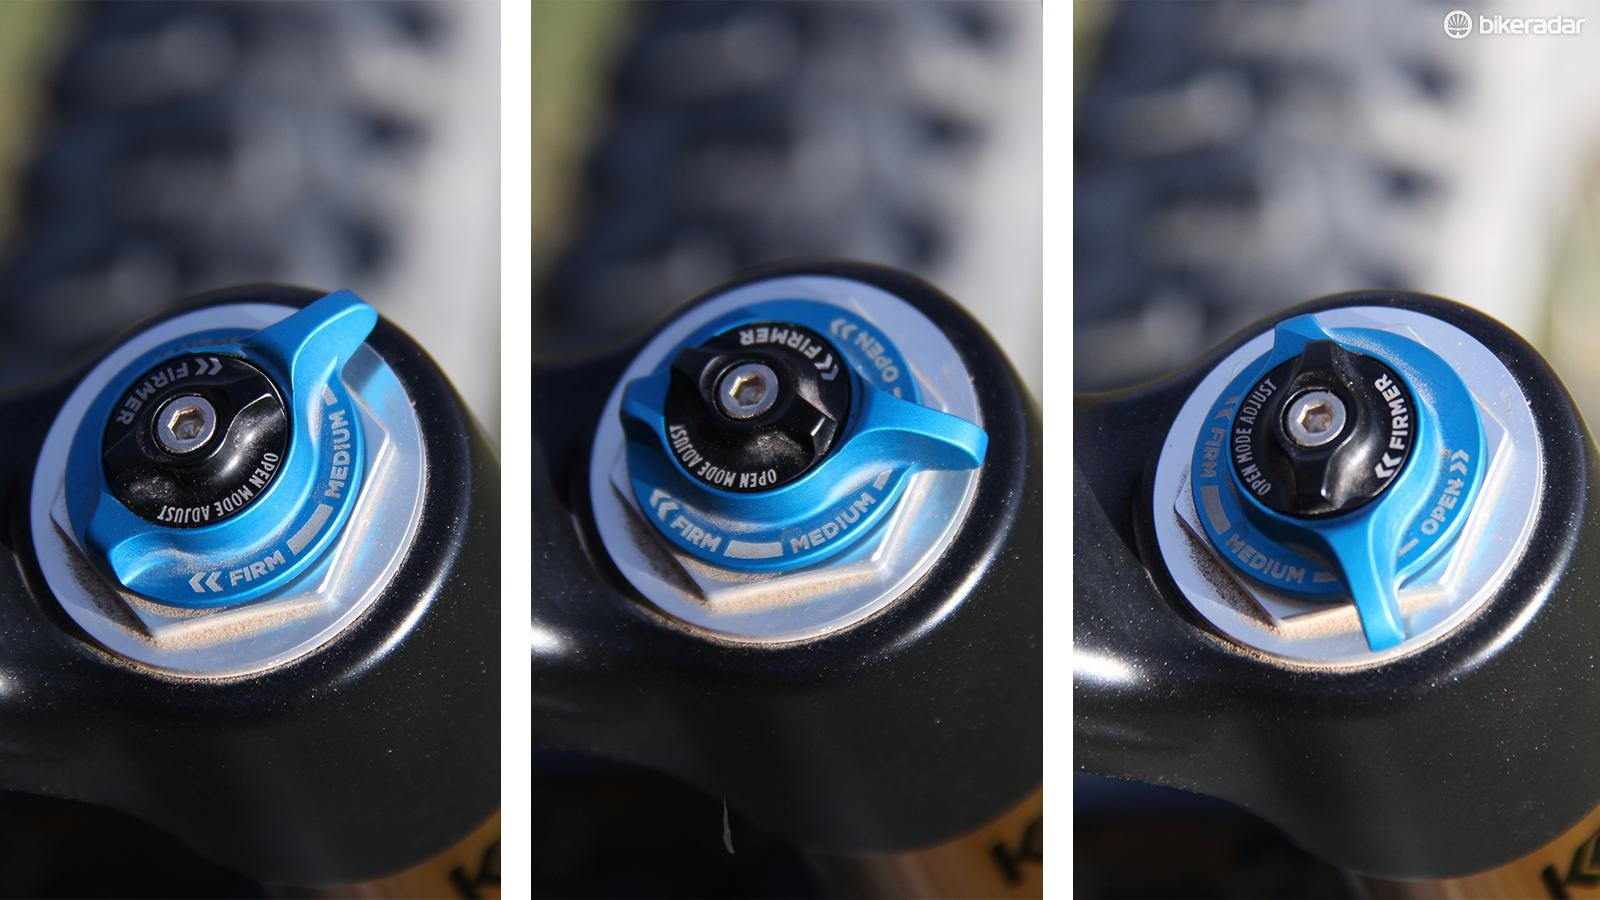 Fox updated its compression adjustment for 2016. The black dial lets you fine-tune compression in the open position, while the blue knob adjusts between open (left), platform (center) and locked-out (right)